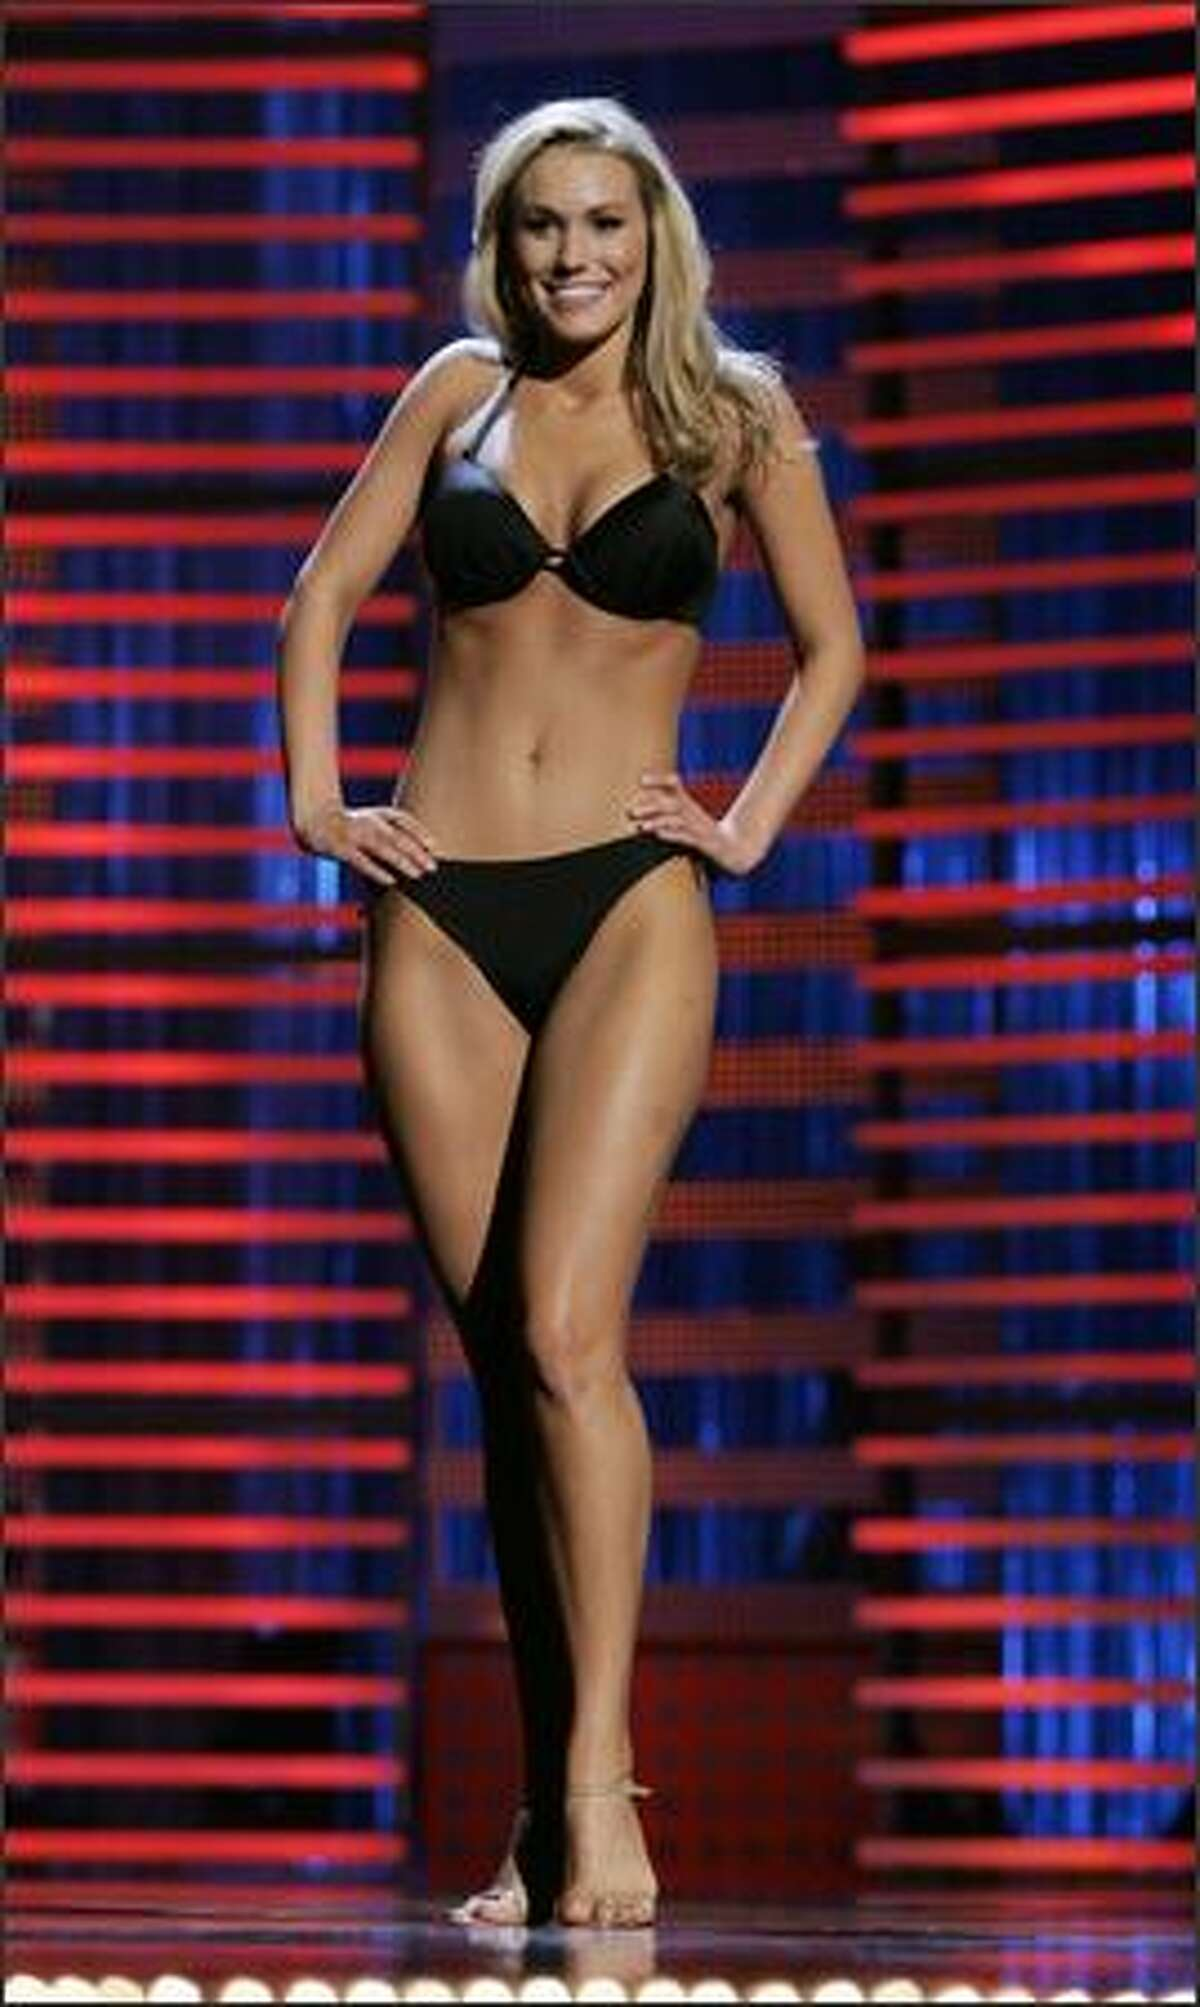 Miss Texas Molly Hazlett won Thursday's preliminary lifestyle and fitness award and will receive a $1,000 scholarship.